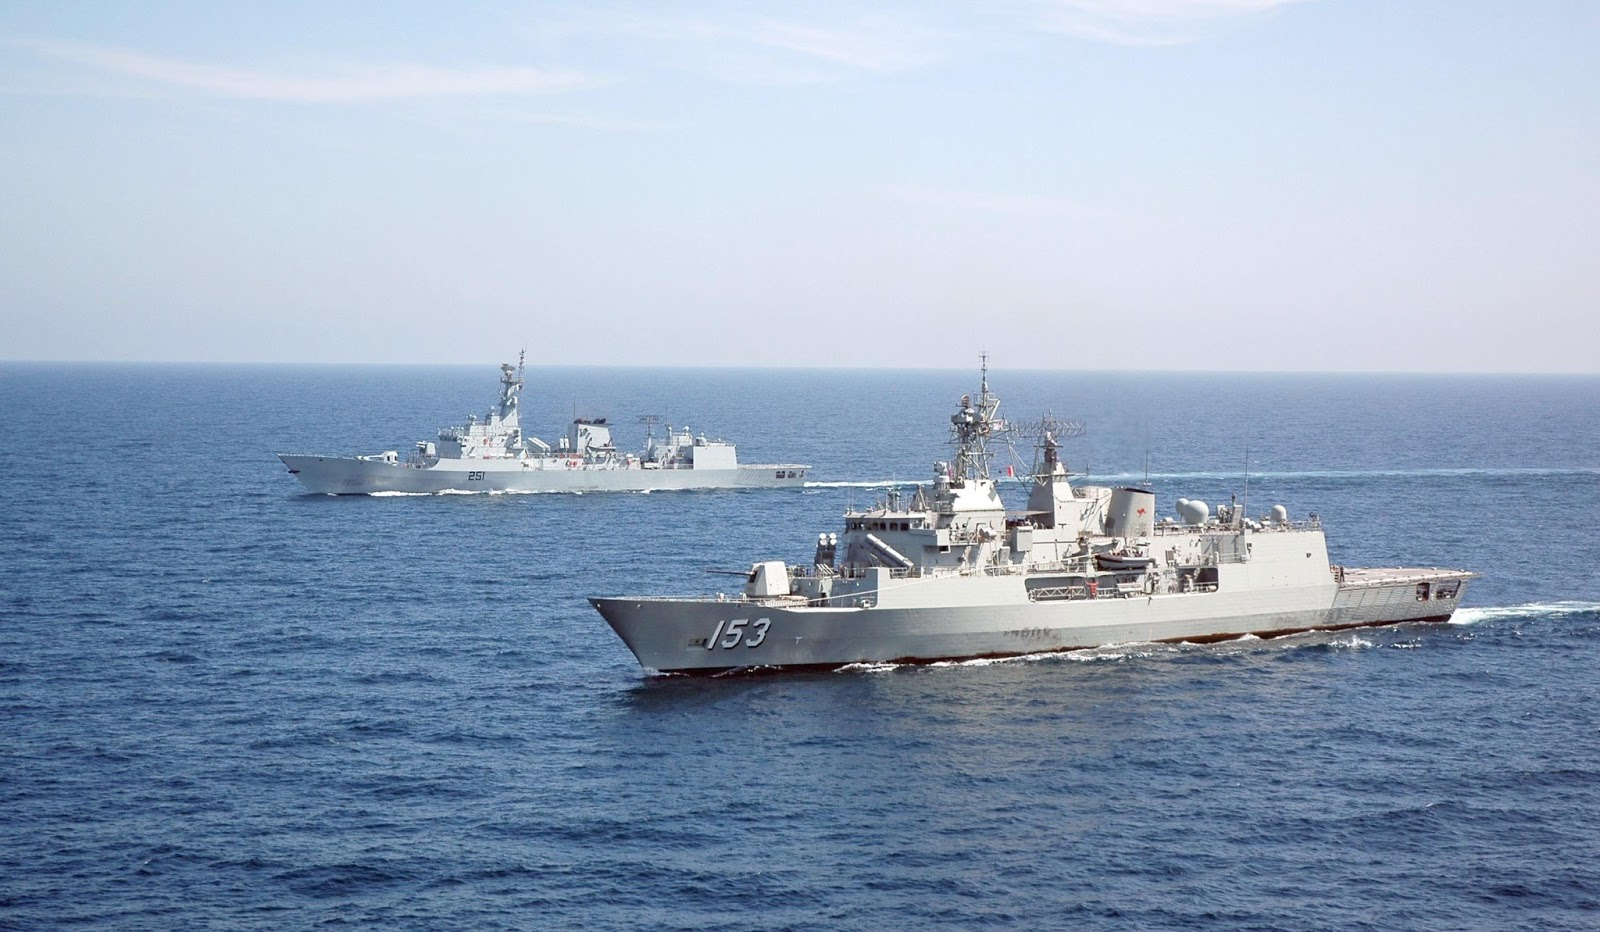 Pakistan Navy New Wallpapers 2013 - All About Pakistan ...